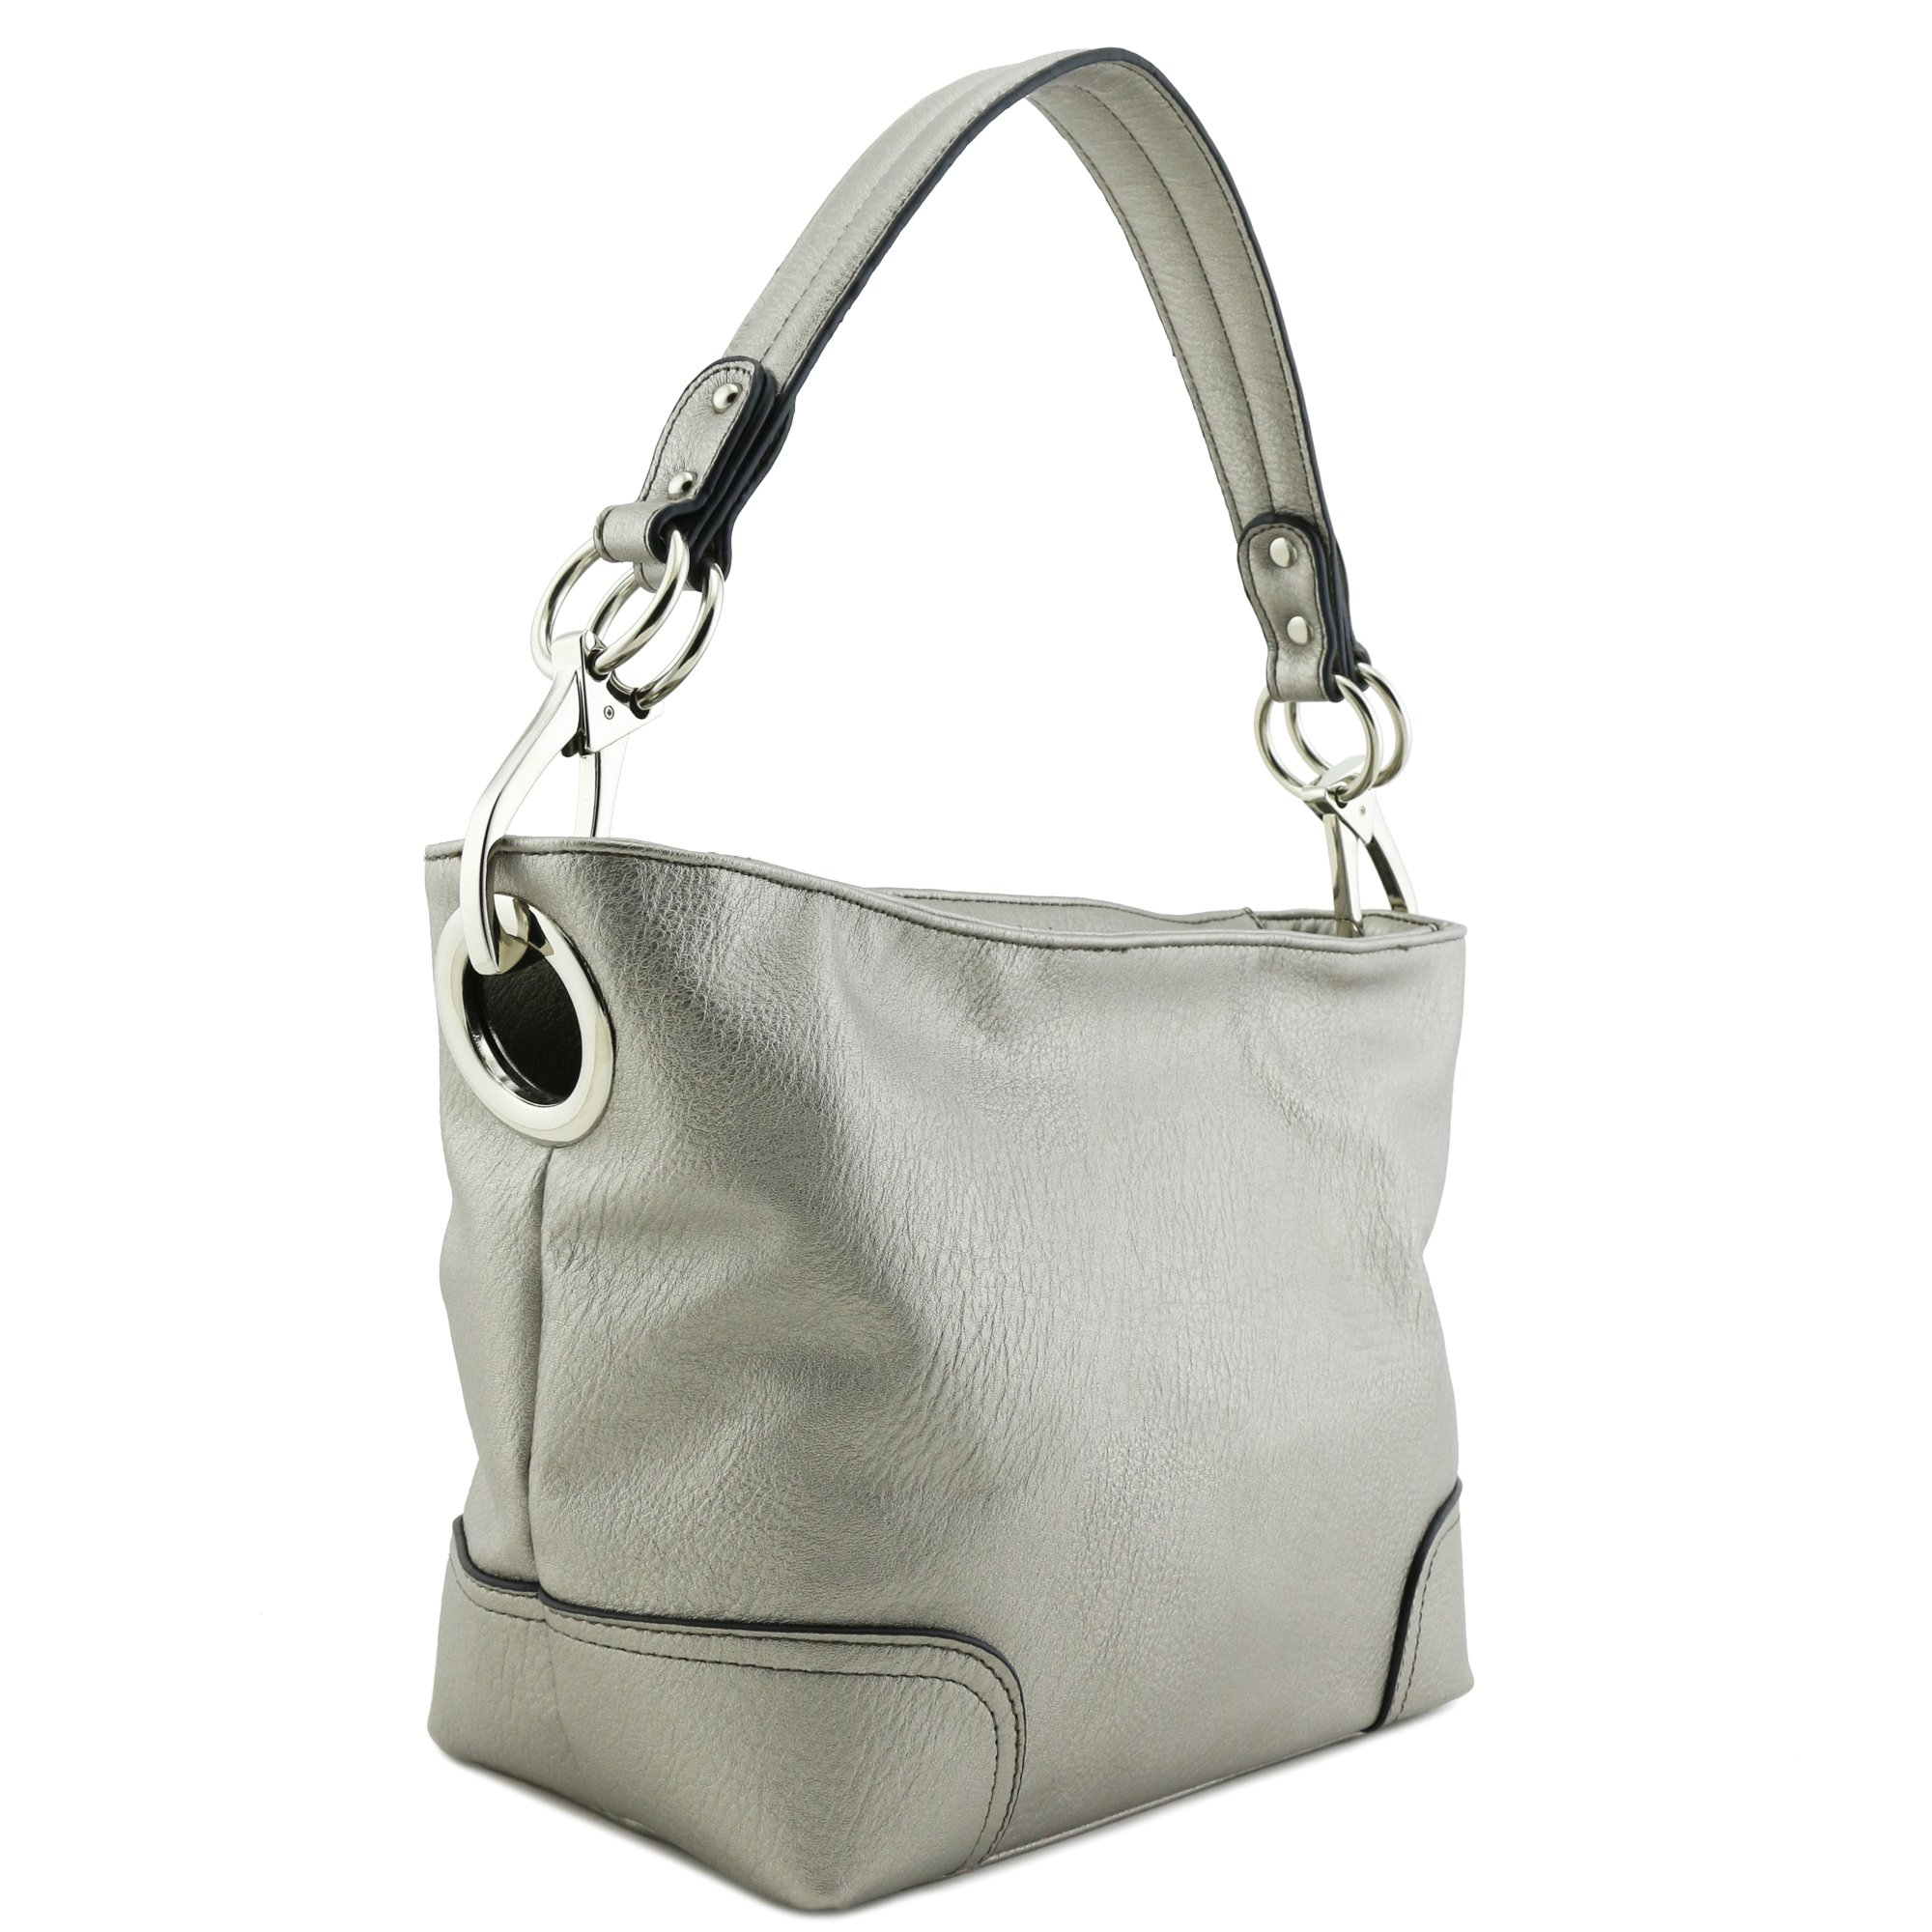 Small Hobo Shoulder Bag with Snap Hook Hardware Dark Silver